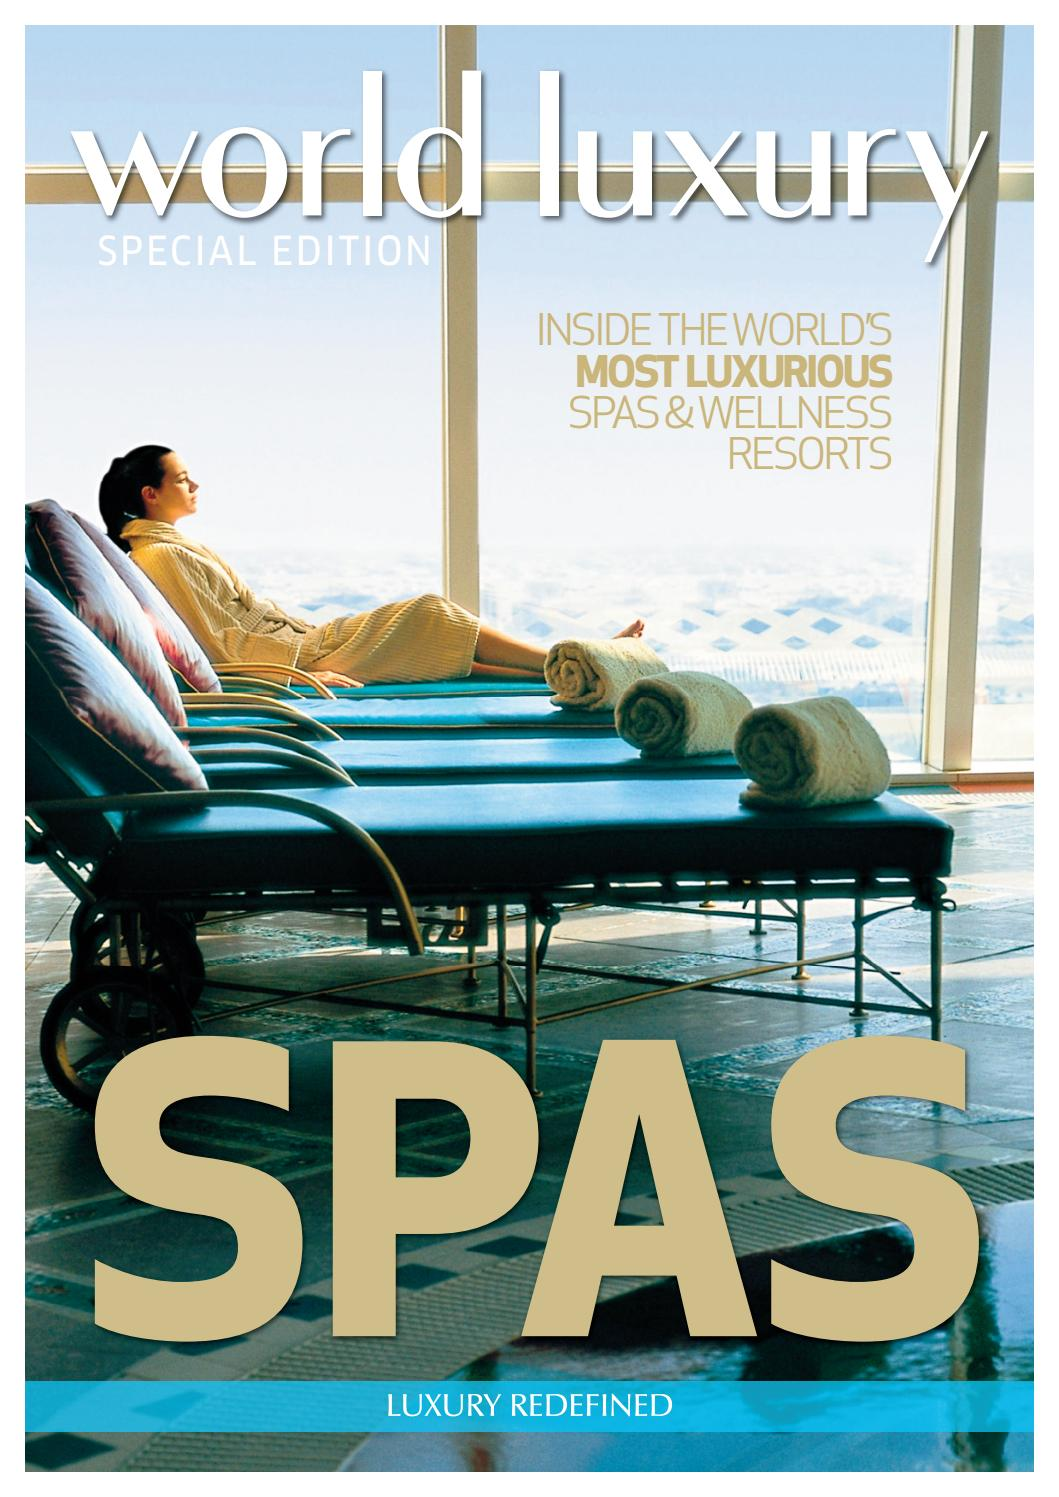 World luxury daily luxury spa special by world luxury for Special hotels in the world